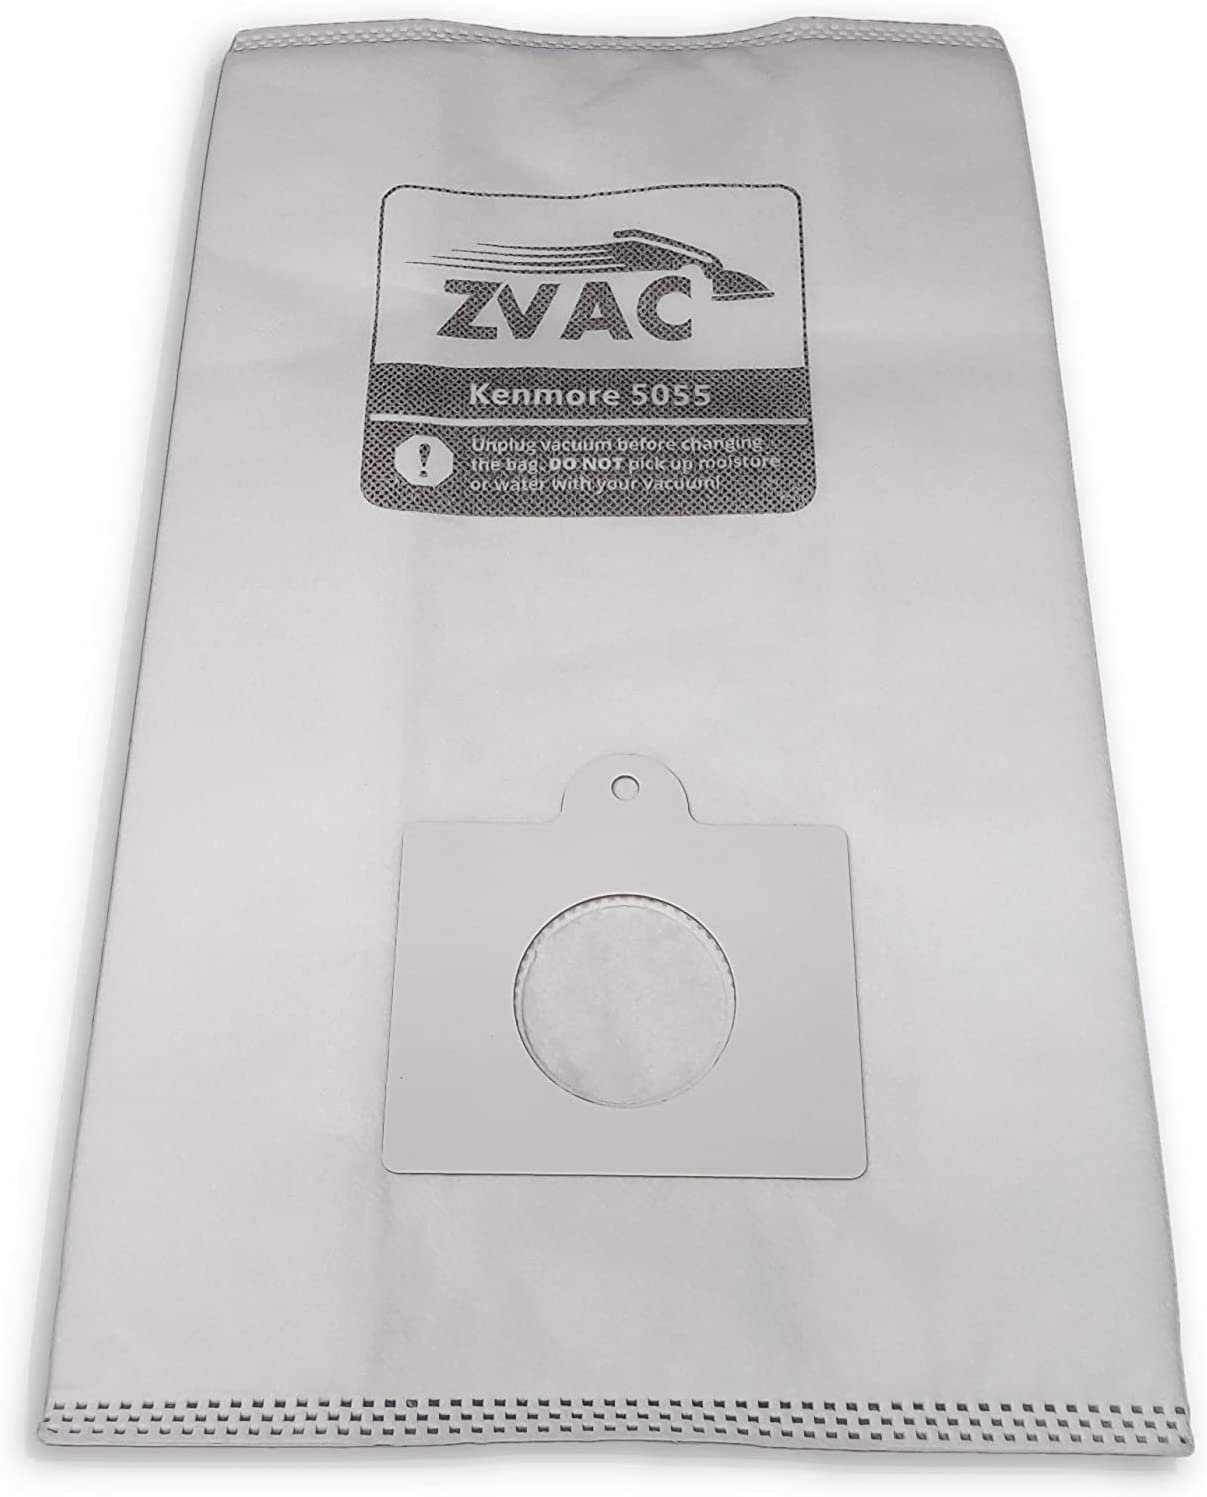 ZVac Kenmore C/Q Replacement Vacuum Cleaner Cloth Bags Compatible with Kenmore Canister Style C, Q, 5055, 50558, Panasonic C-5, MC-V295H (30)